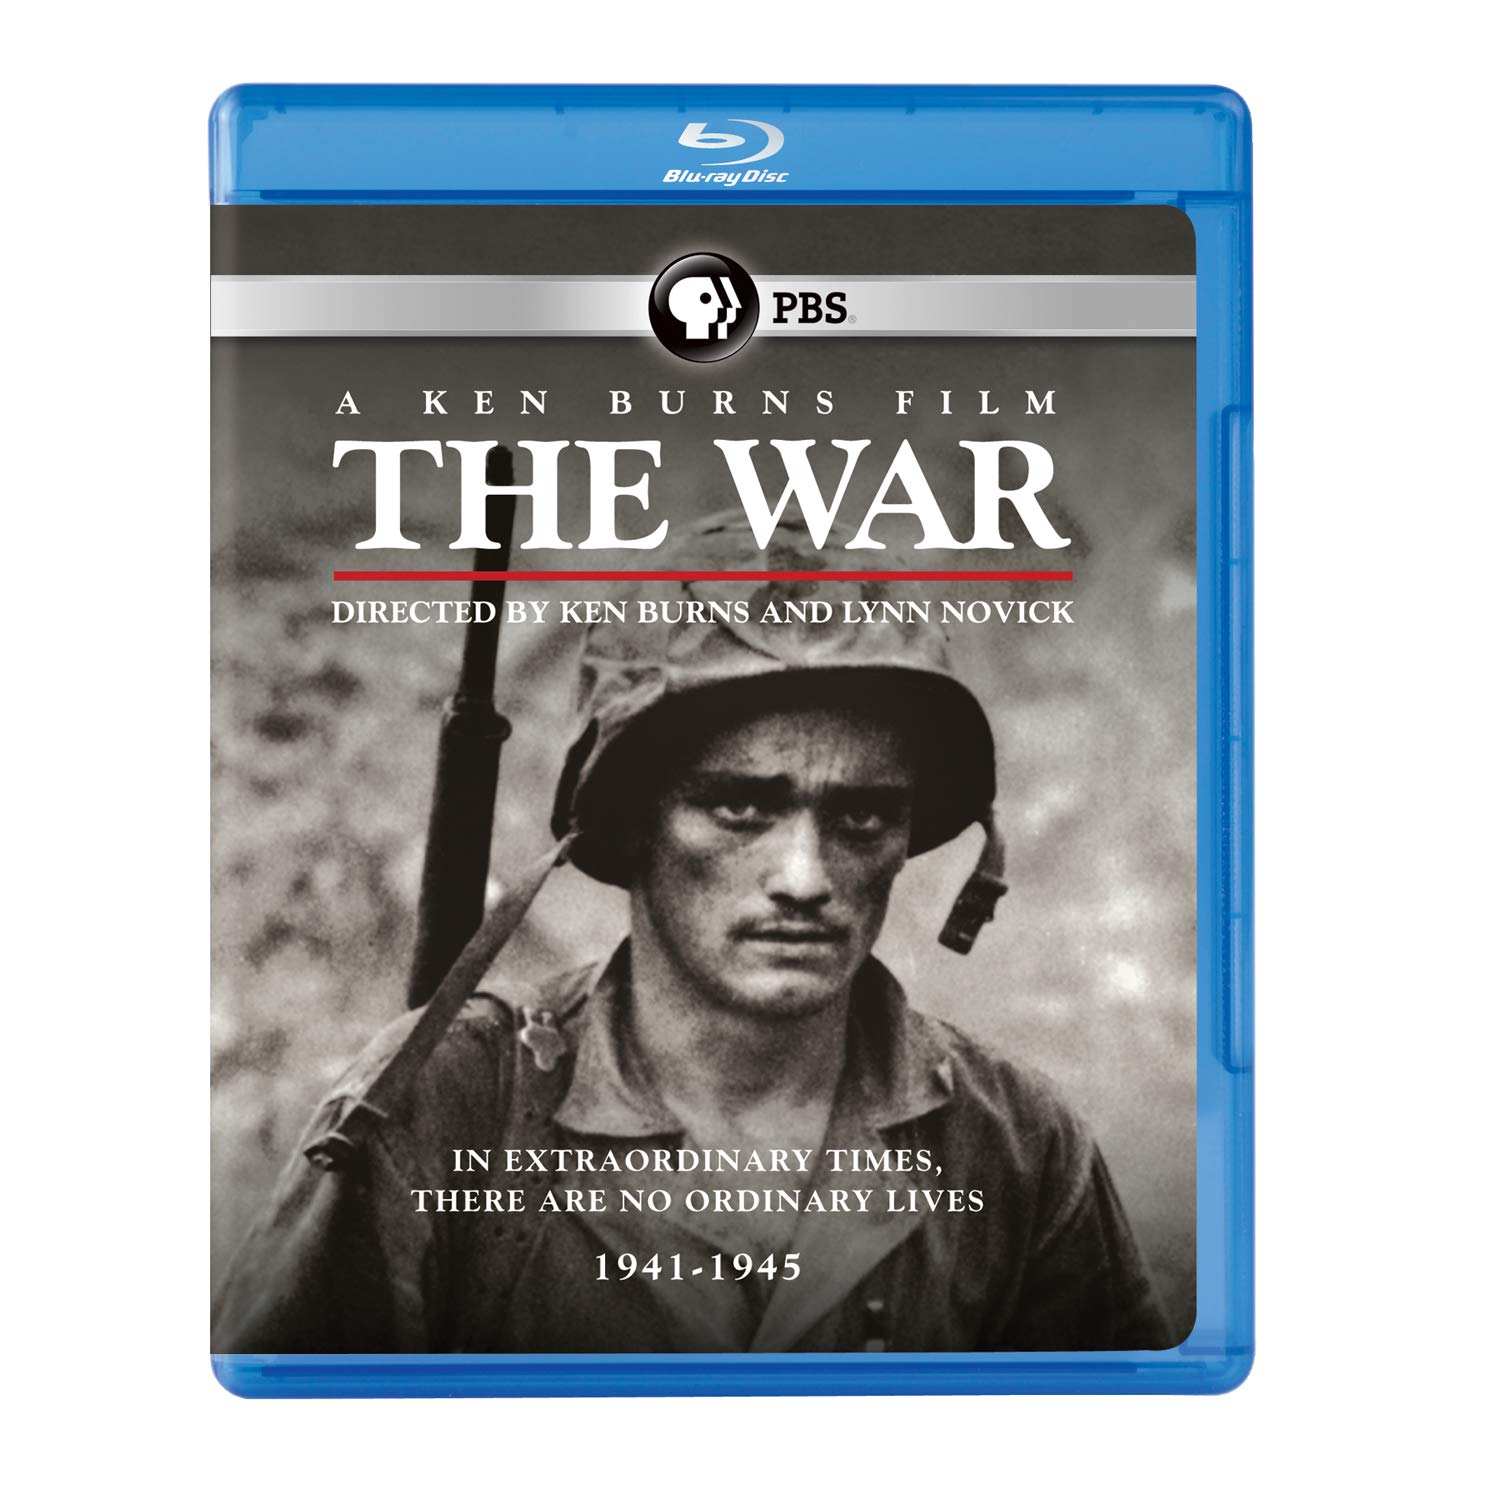 The War - A Ken Burns Film [Blu-ray]